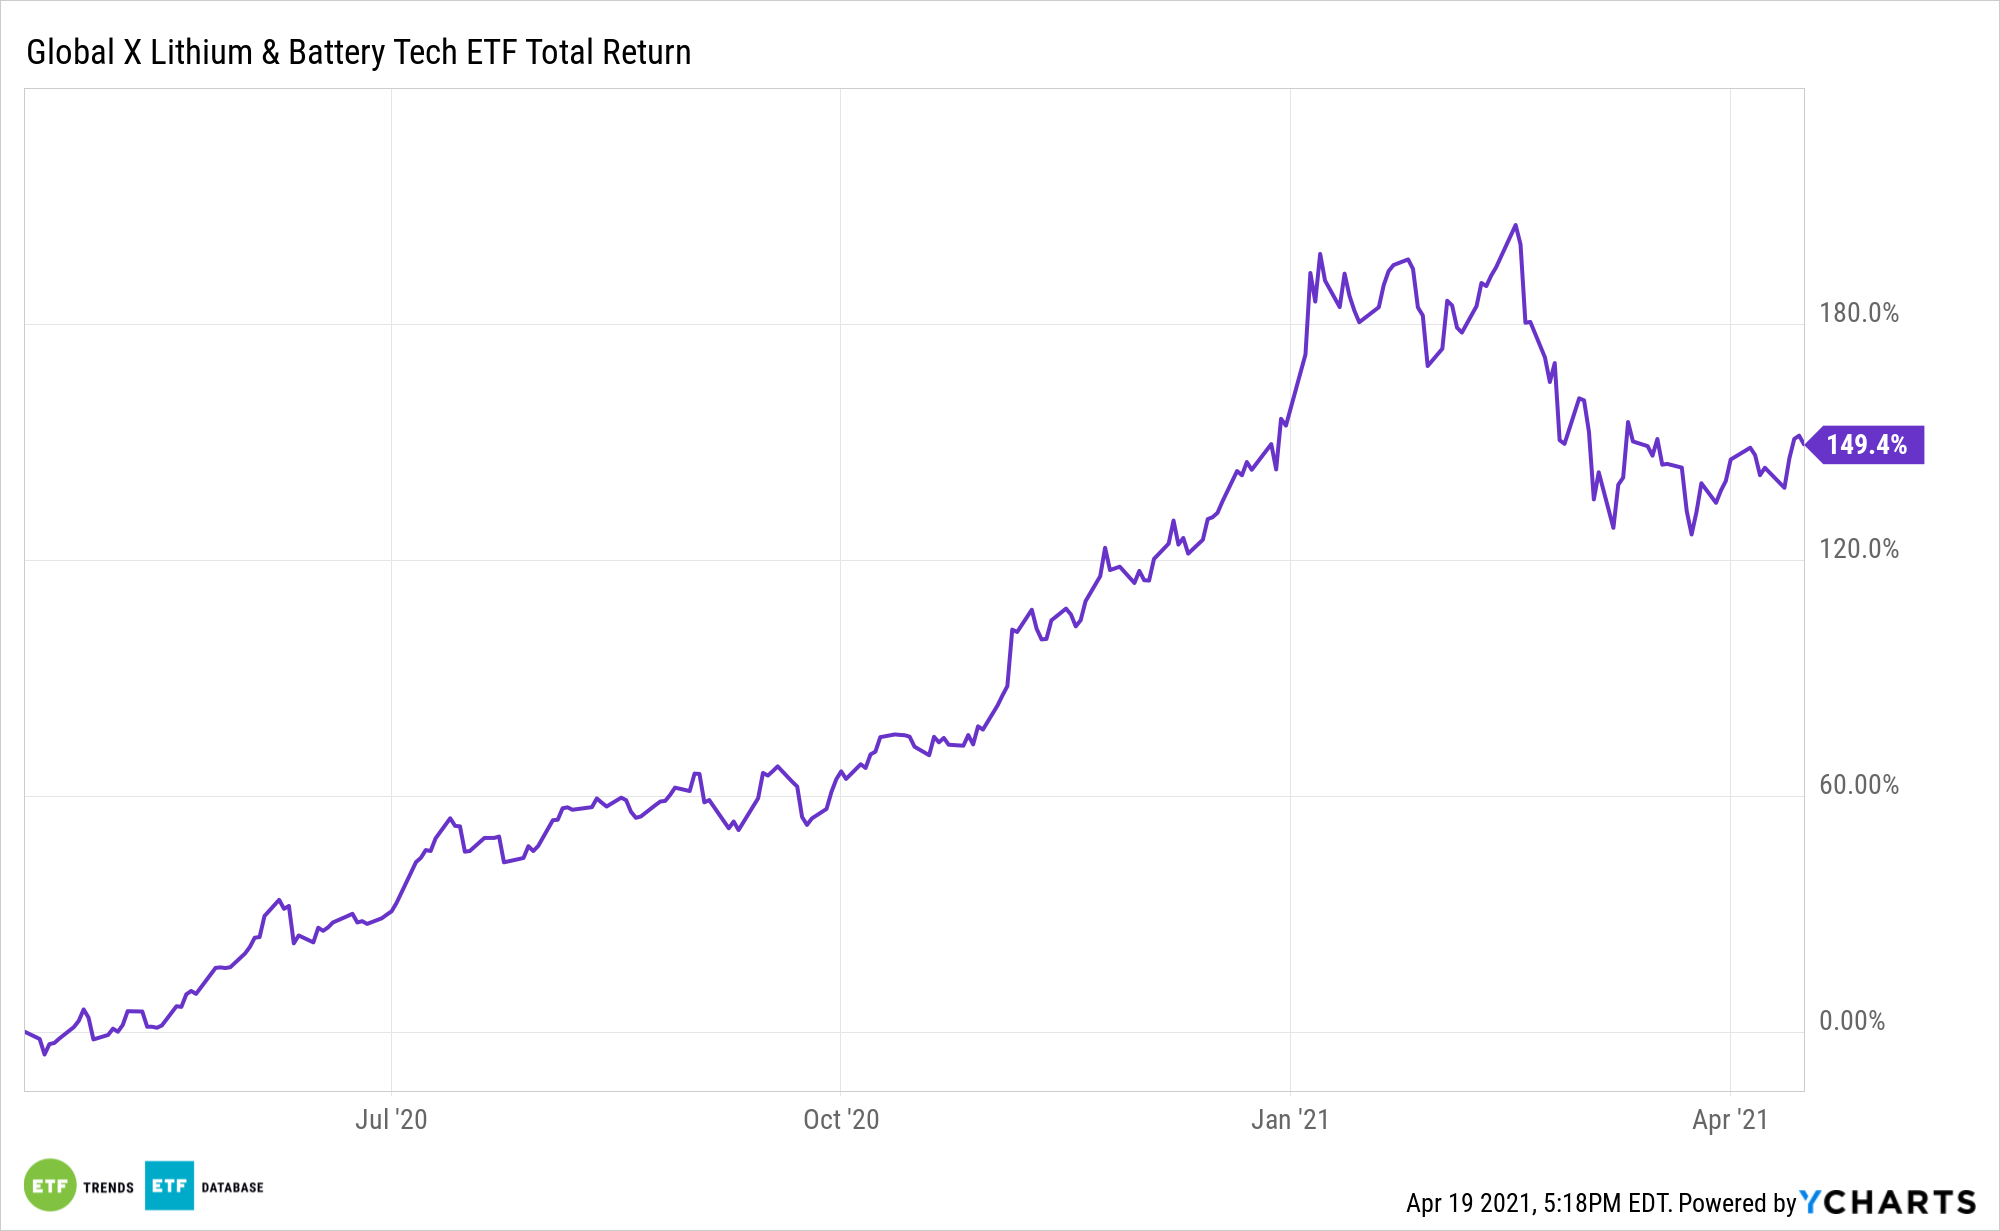 LIT 1 Year Total Return